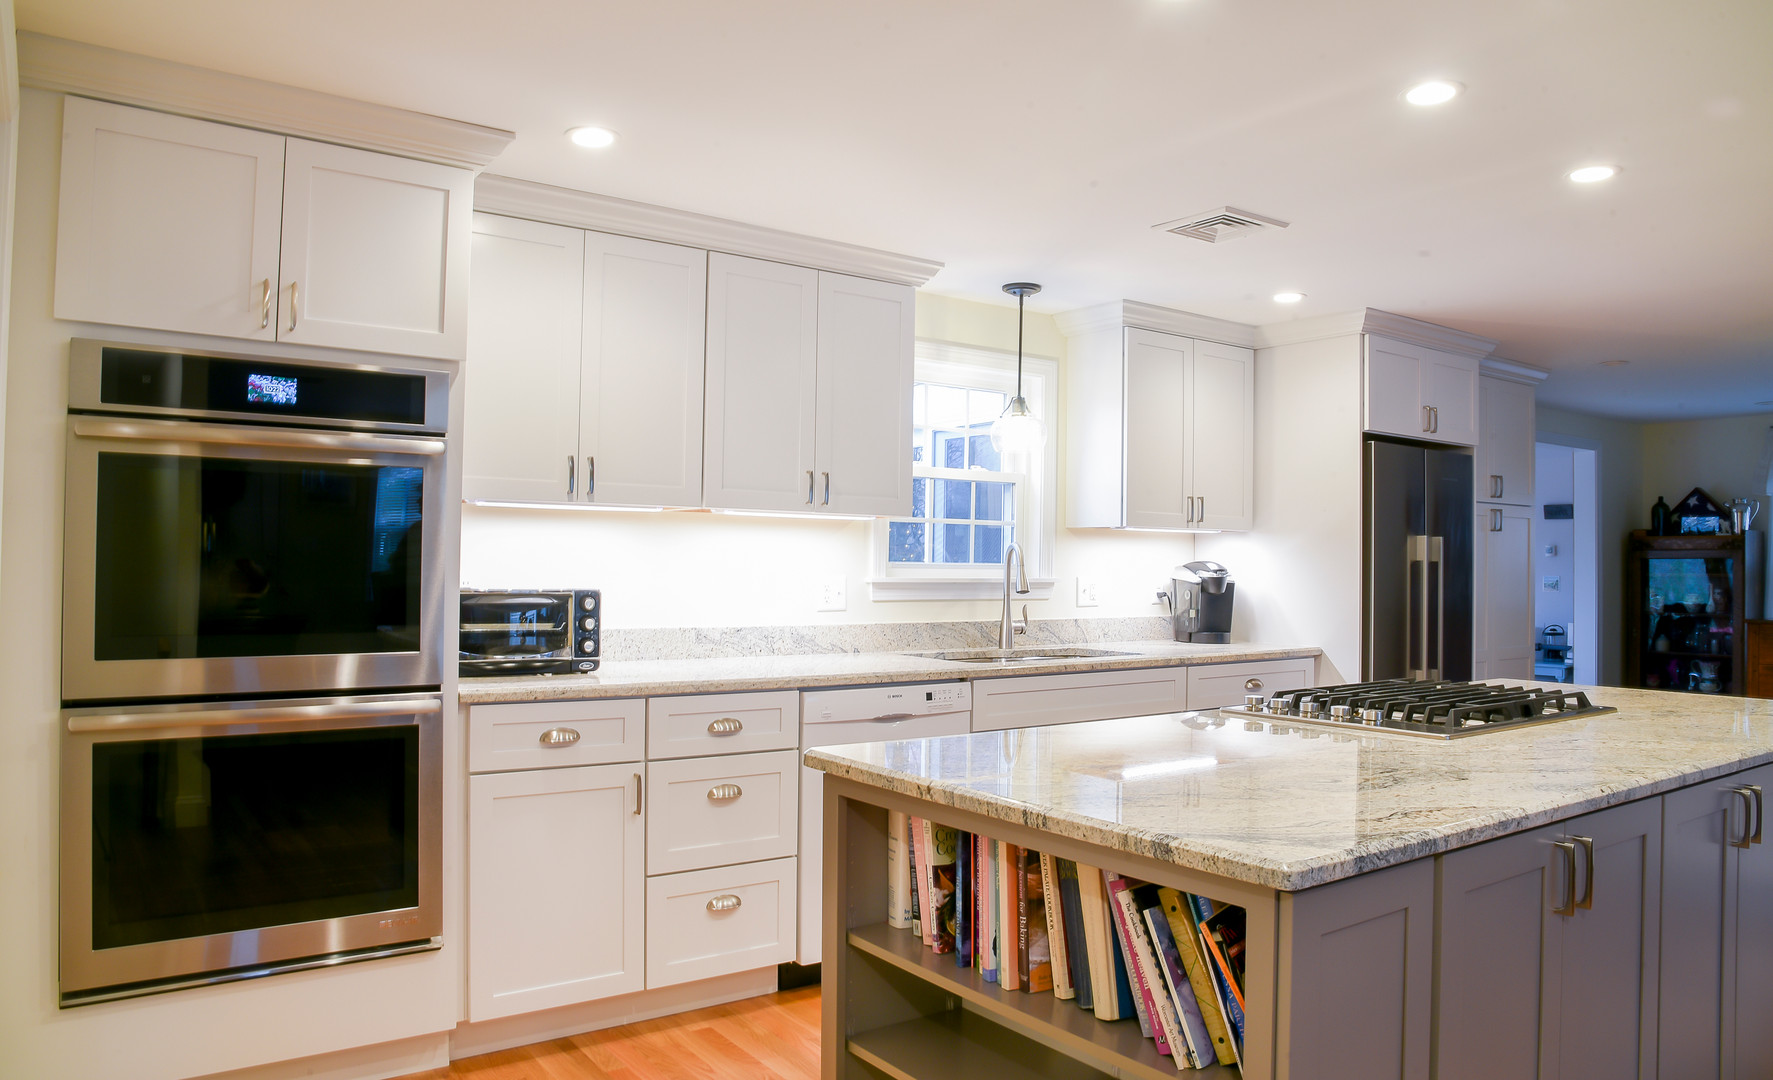 Renovated Kitchen/Second Story Addition, Dennis